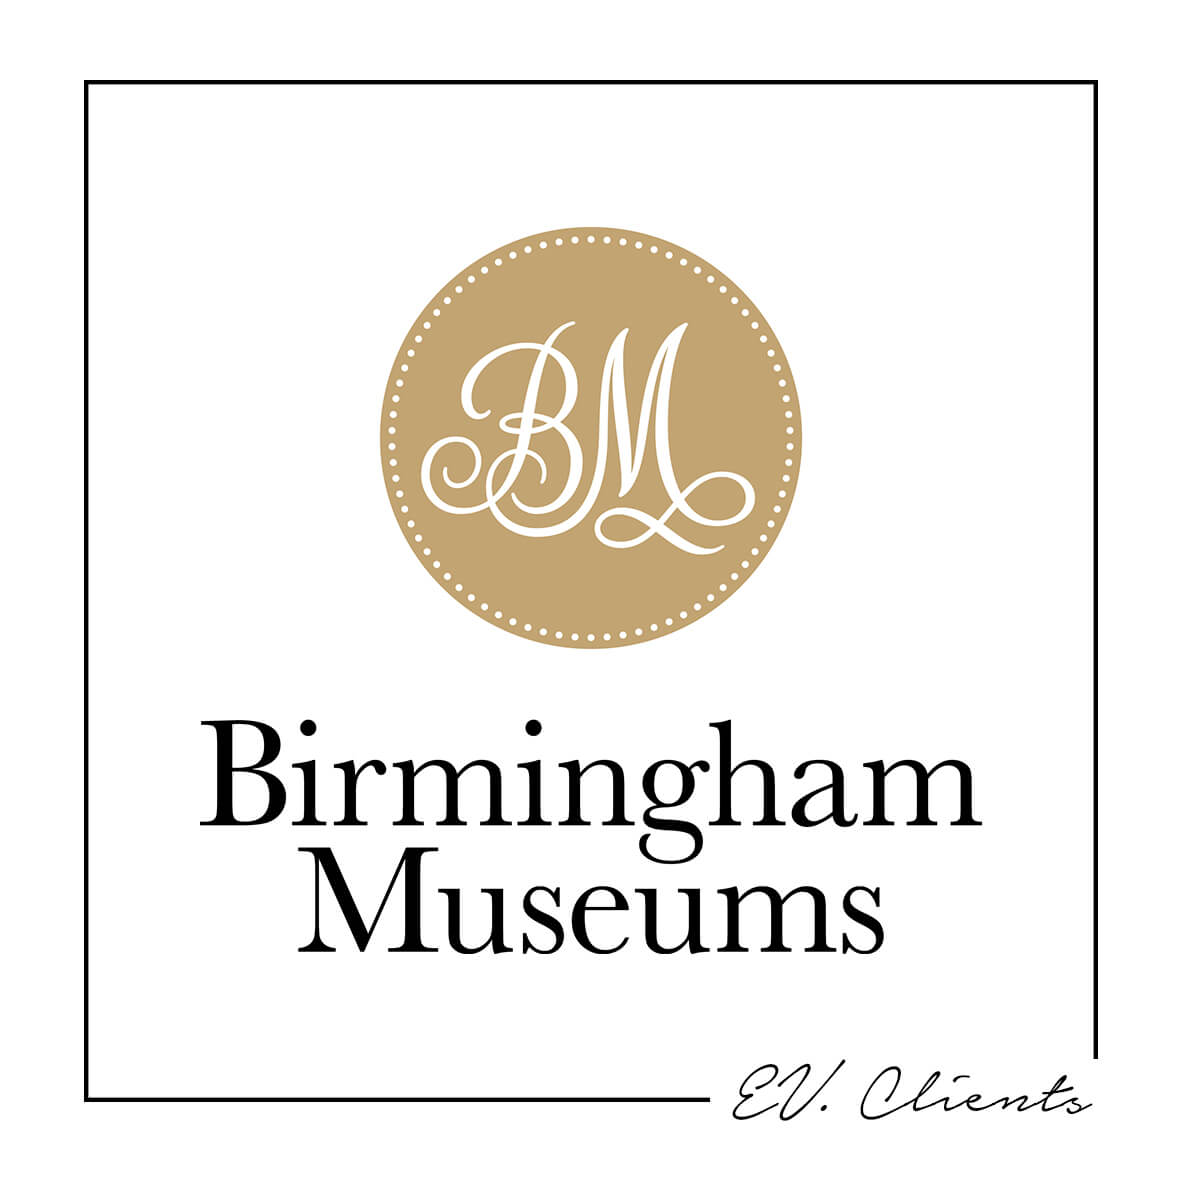 Birmingham Museums, Birmingham Museum and Art Gallery